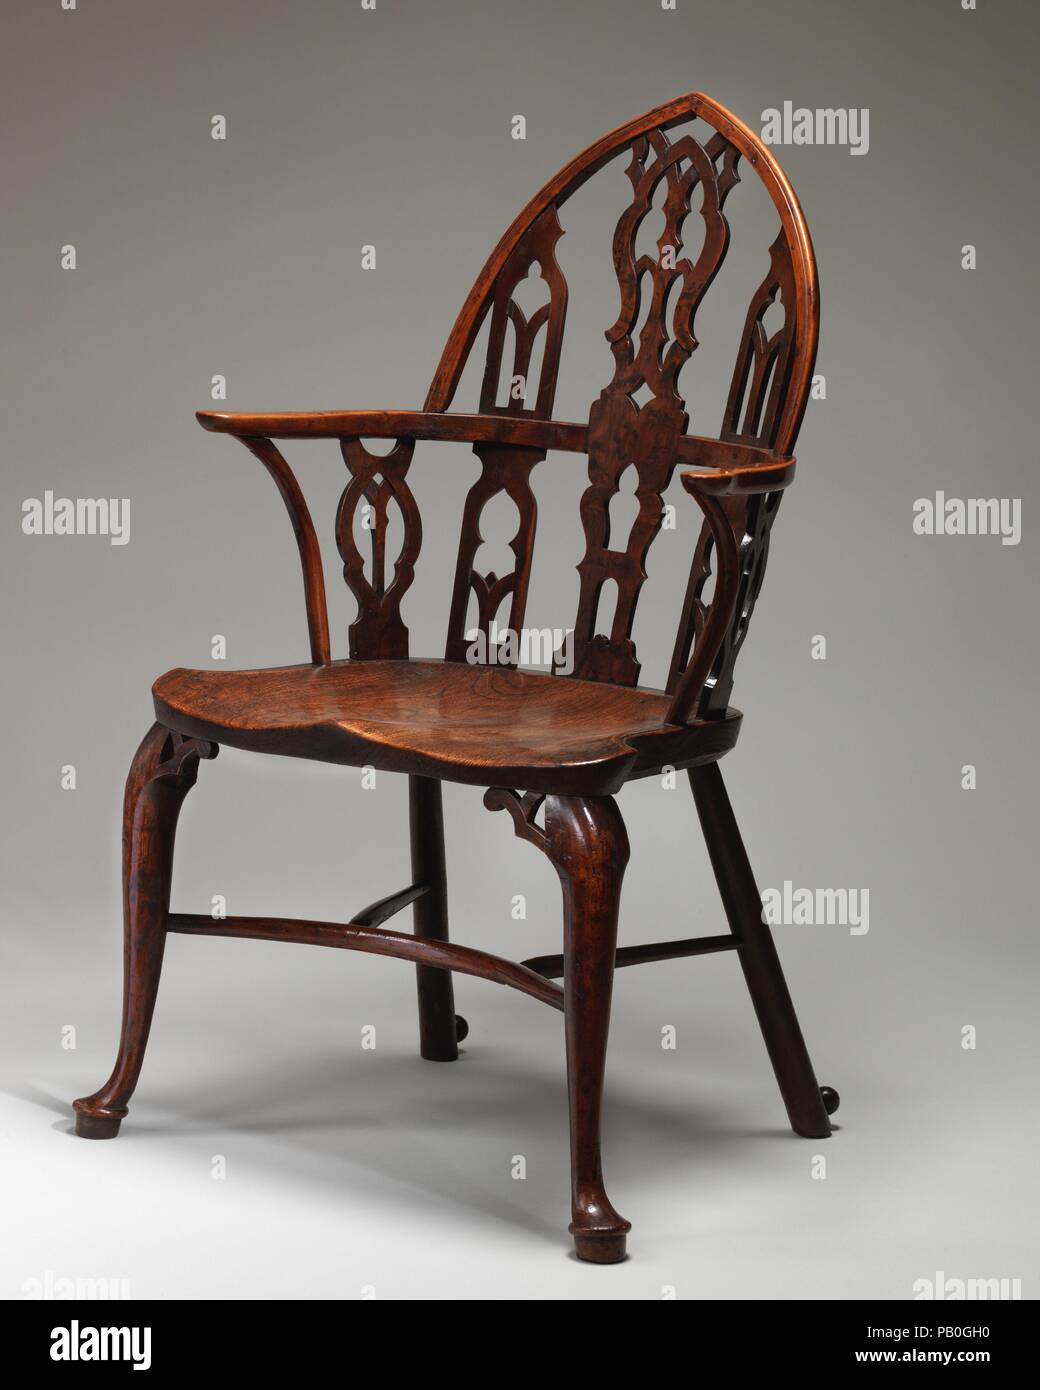 revolving chair thames rent tent and tables chairs windsor back stock photos images gothic armchair one of a pair culture british valley